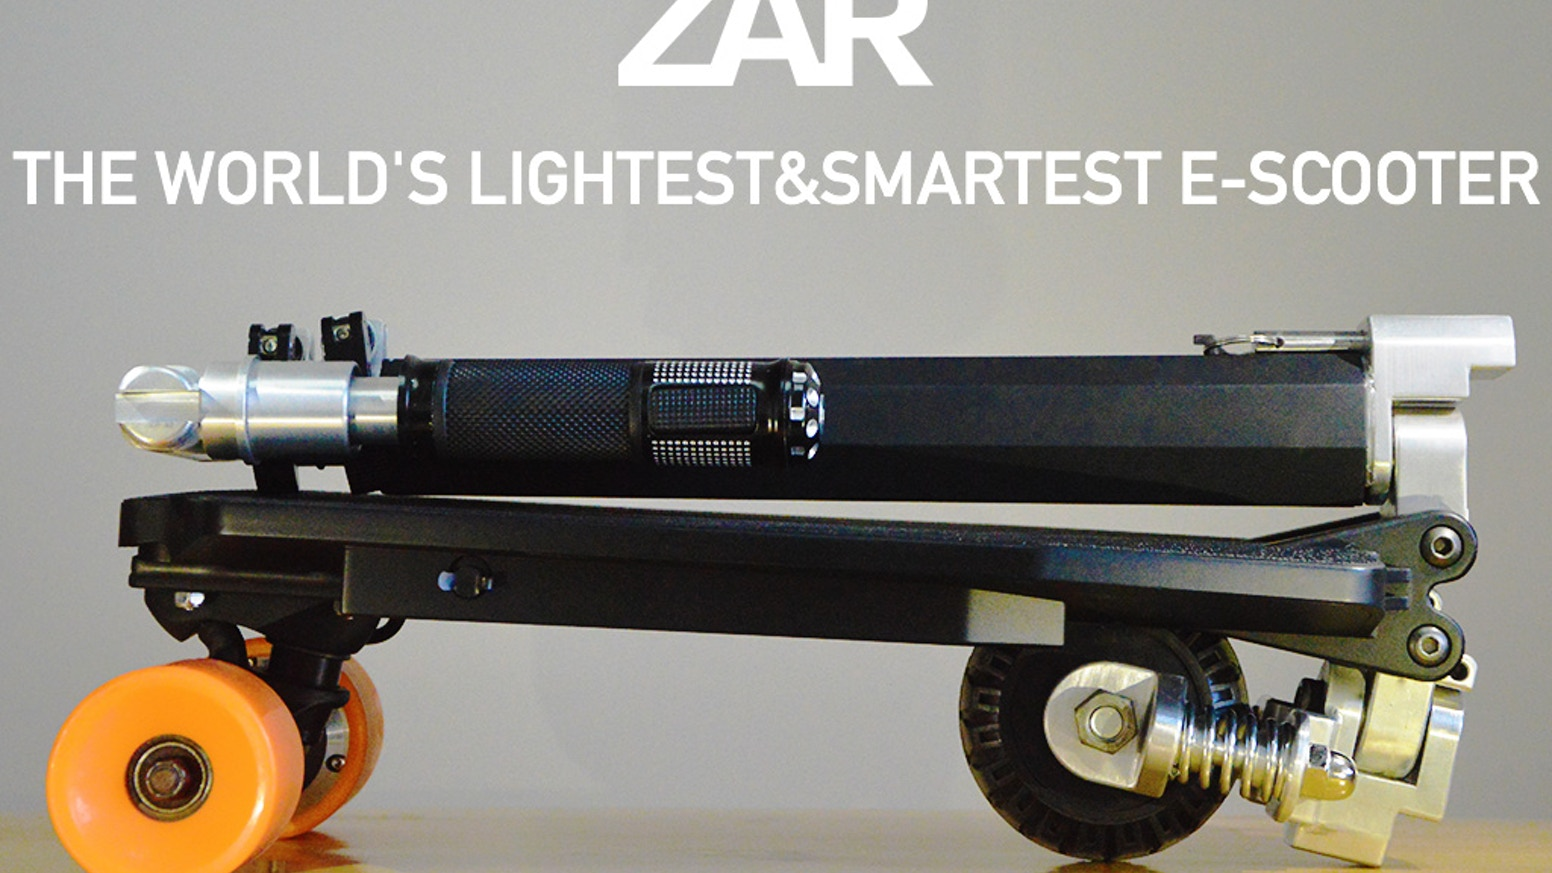 The World's Lightest & Smartest E-Scooter: cool, small, portable, and can be easily folded into a backpack and bring it anywhere.Pre-Order your ZAR:pre-order@crazyfire.love